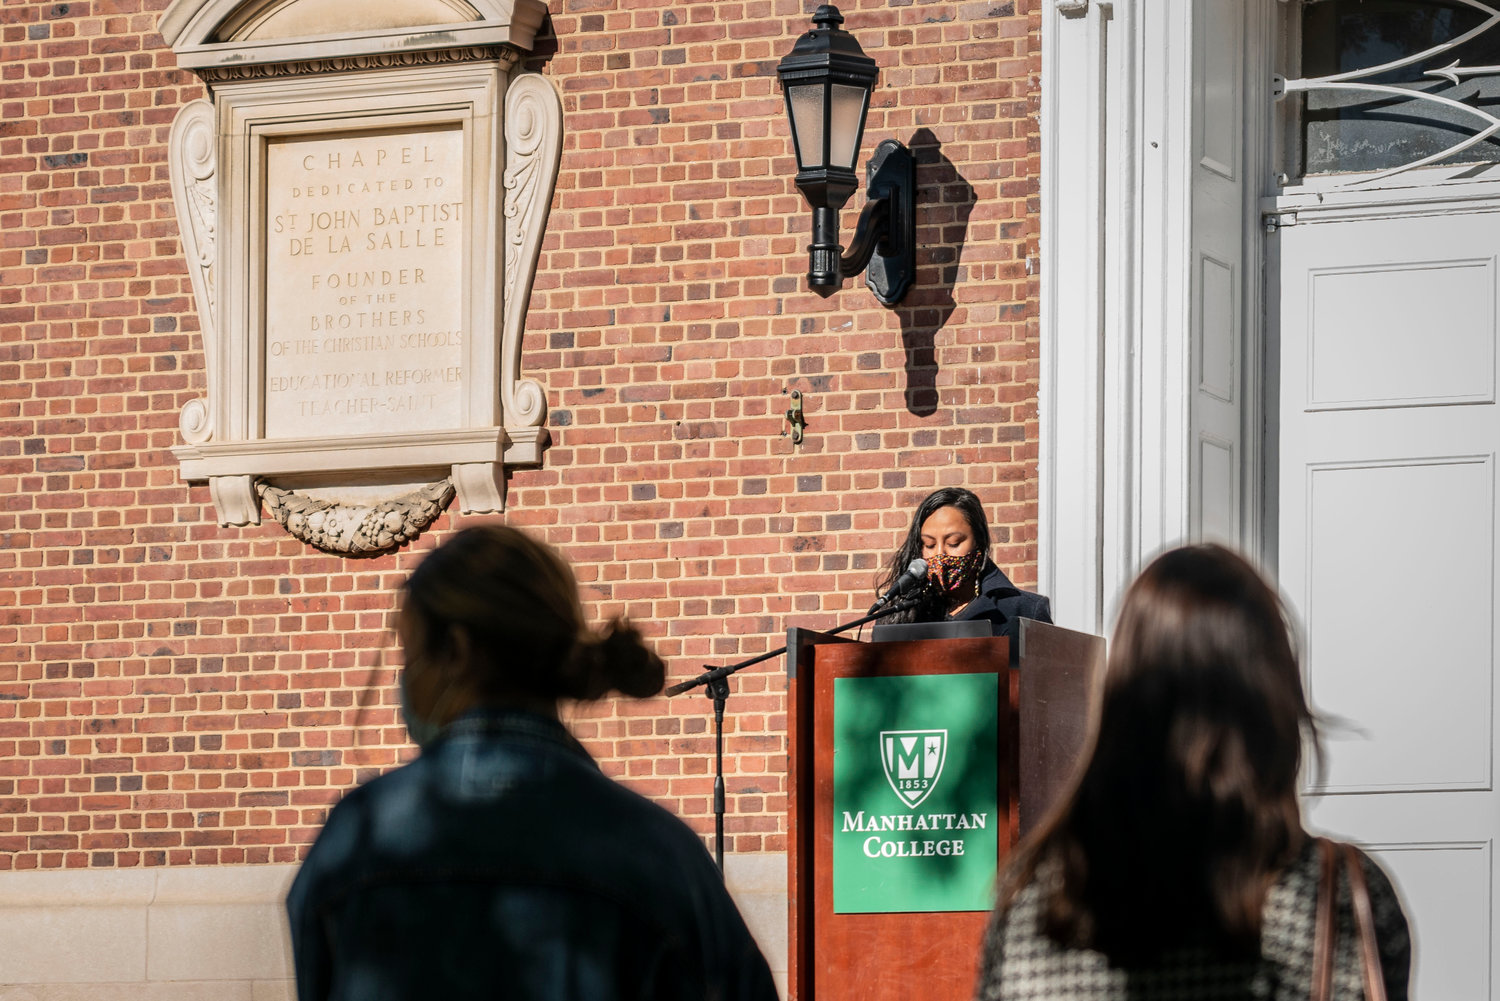 Consuelo Hernandez's climate activism is largely local. She oversees the composting program at the Episcopal Church of the Mediator on West 231st Street, and was one of several speakers at Manhattan College's 'shoe strike' Sept. 22.